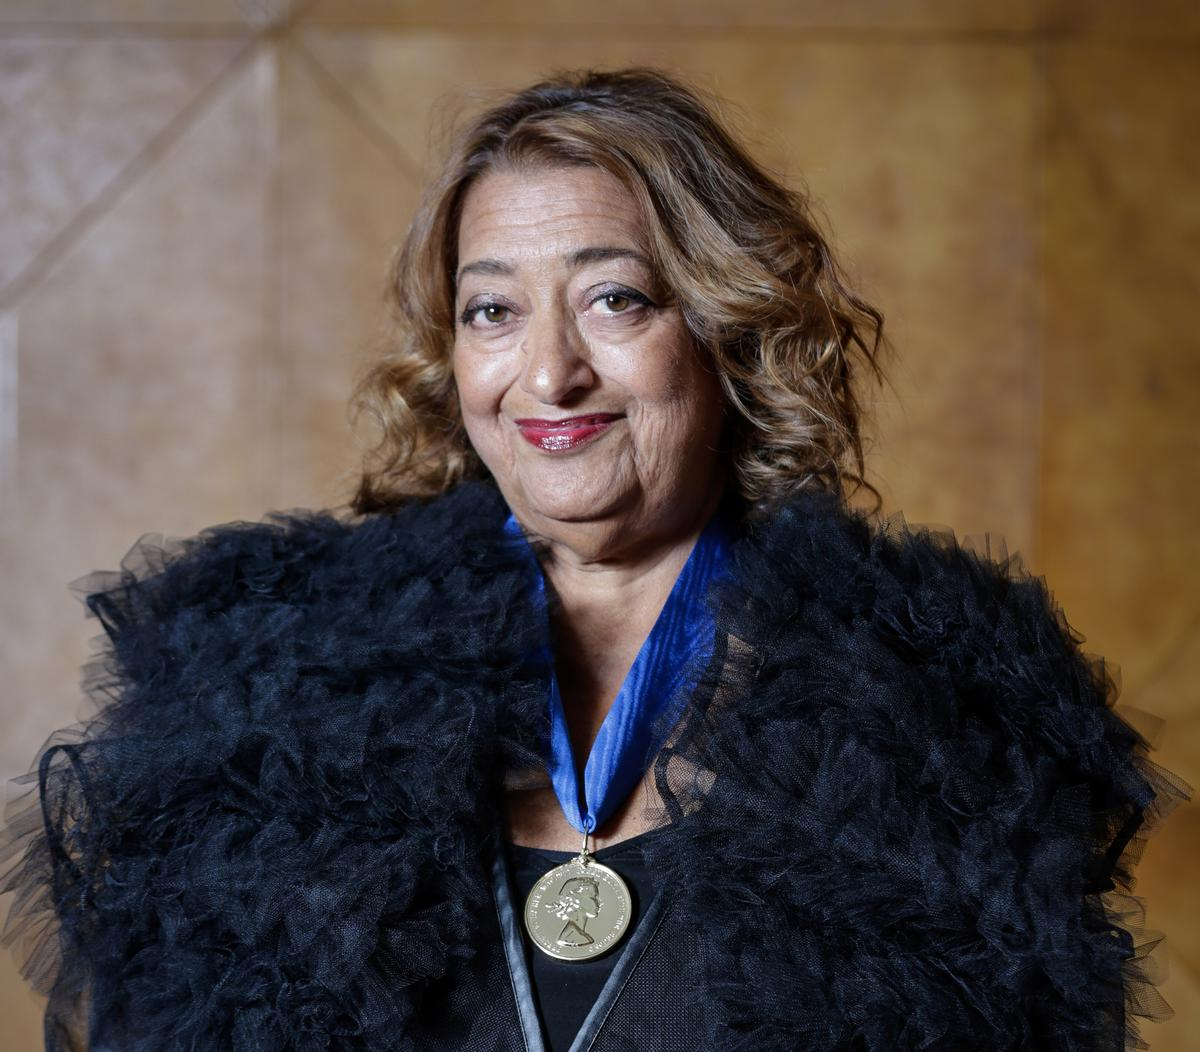 Zaha Hadid became the first woman to win the Pritzker Prize and RIBA Gold Medal / Sophie Mutevelian